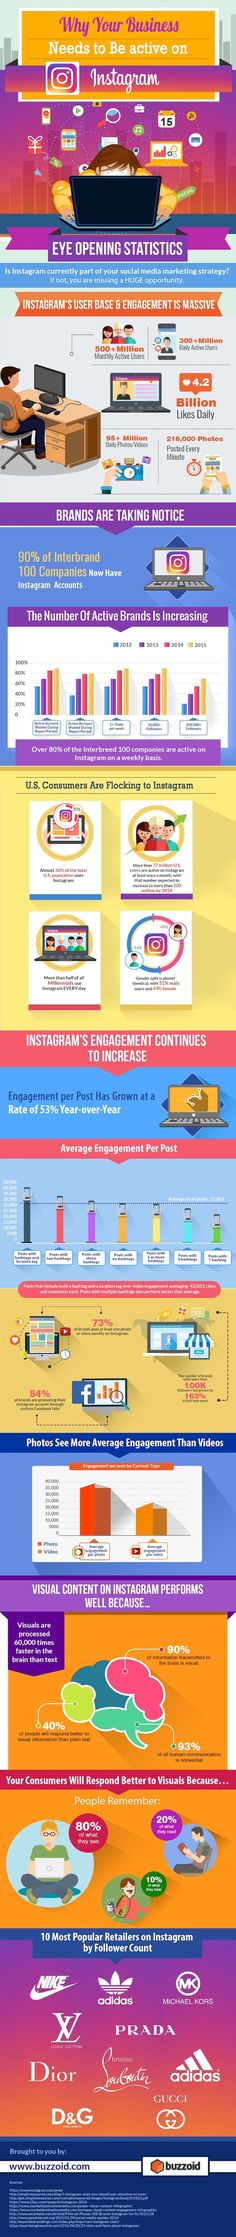 22 Stats That Show Why Your Business Should Be Active on Instagram [Infographic]